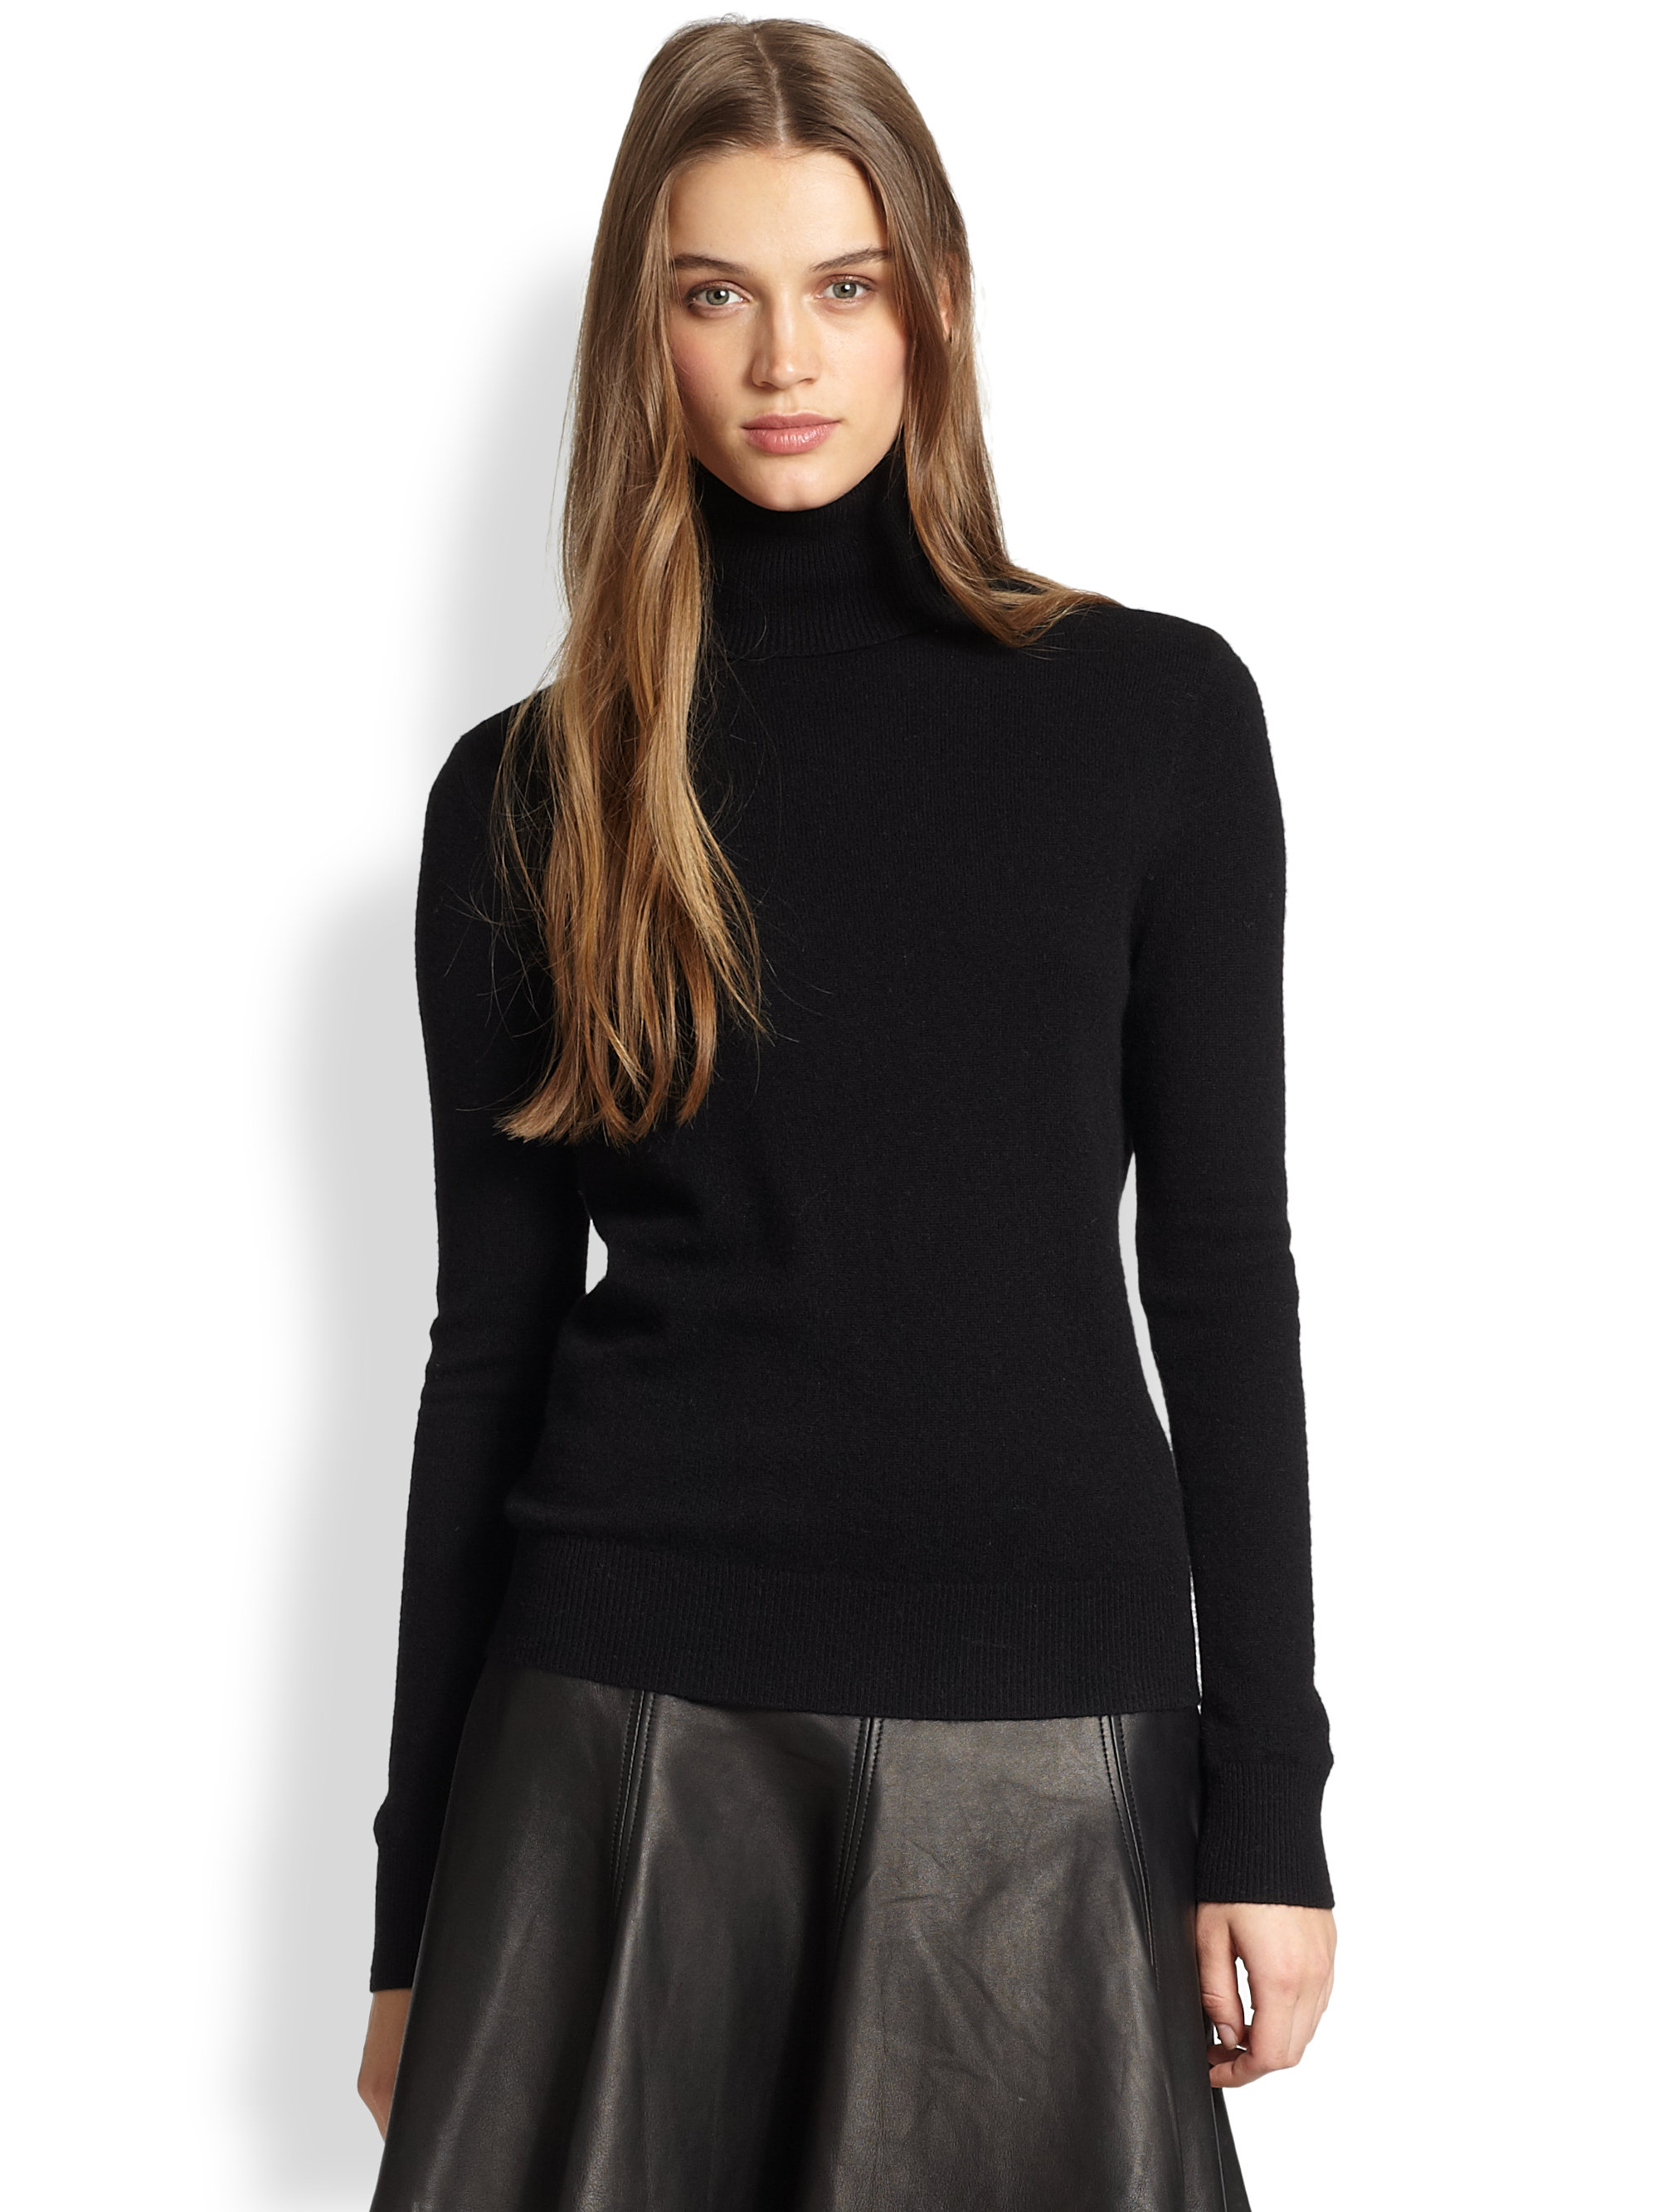 Polo ralph lauren Cashmere Turtleneck Sweater in Black | Lyst